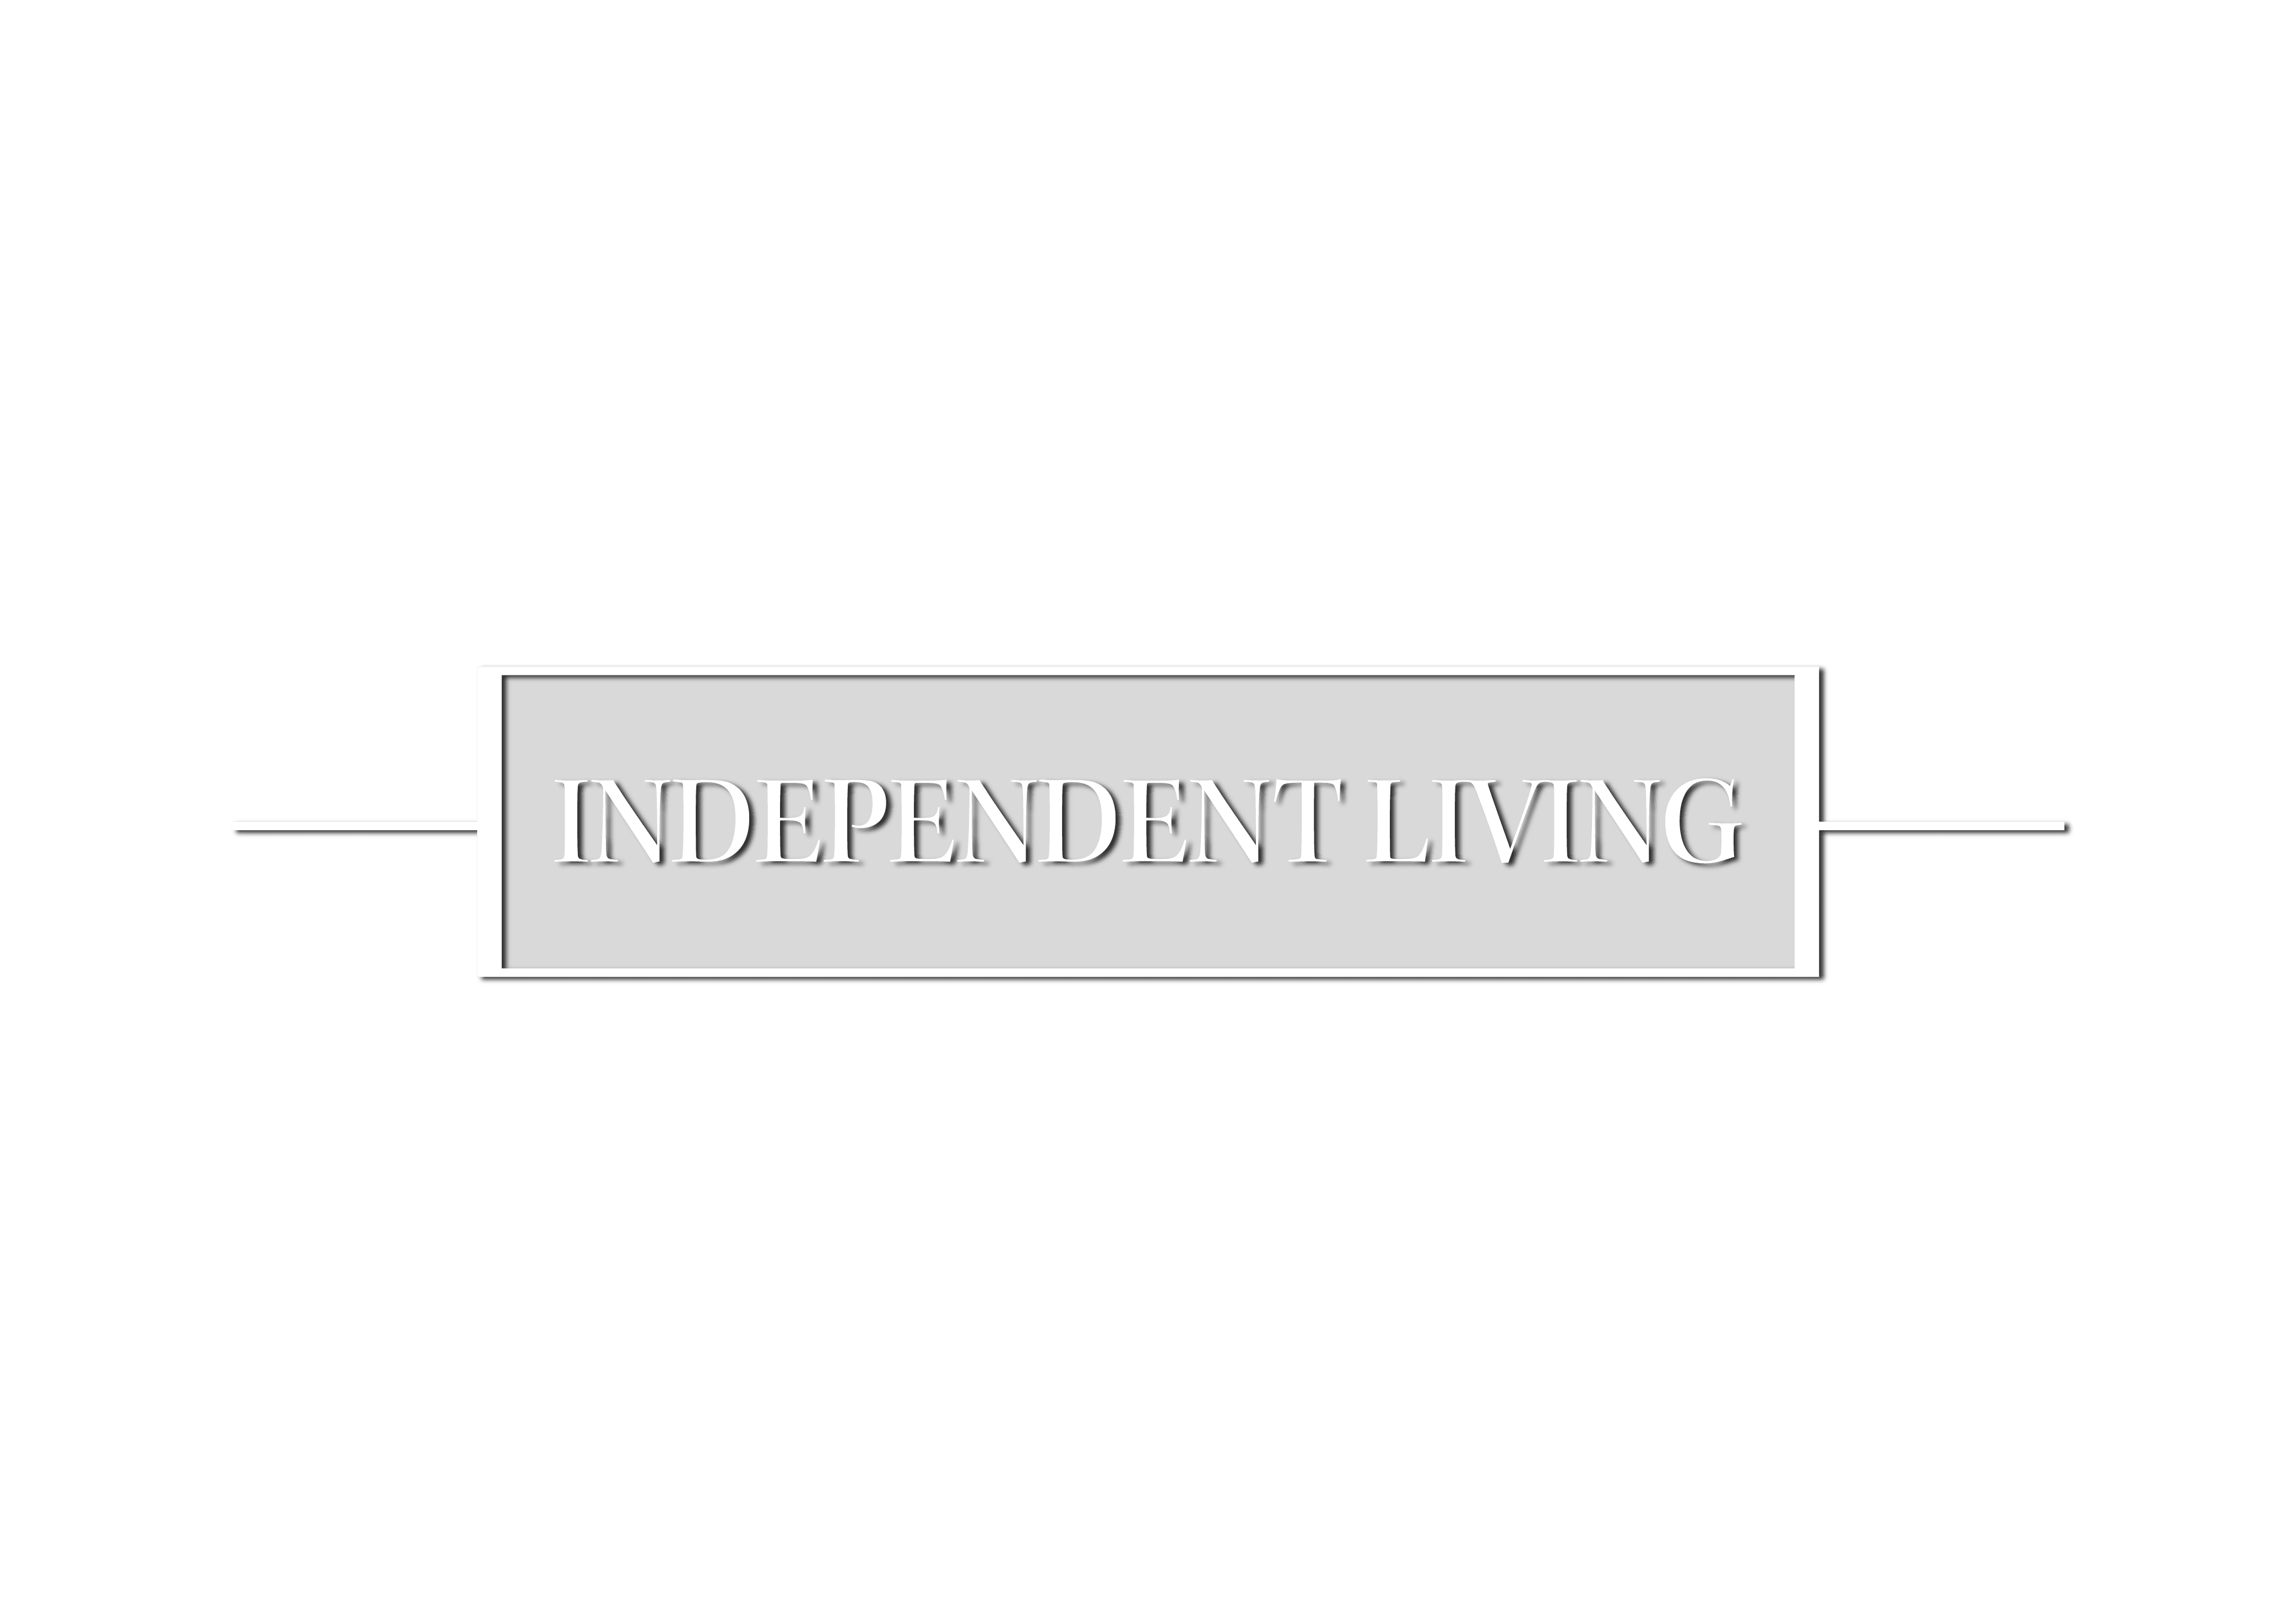 independent living graphic